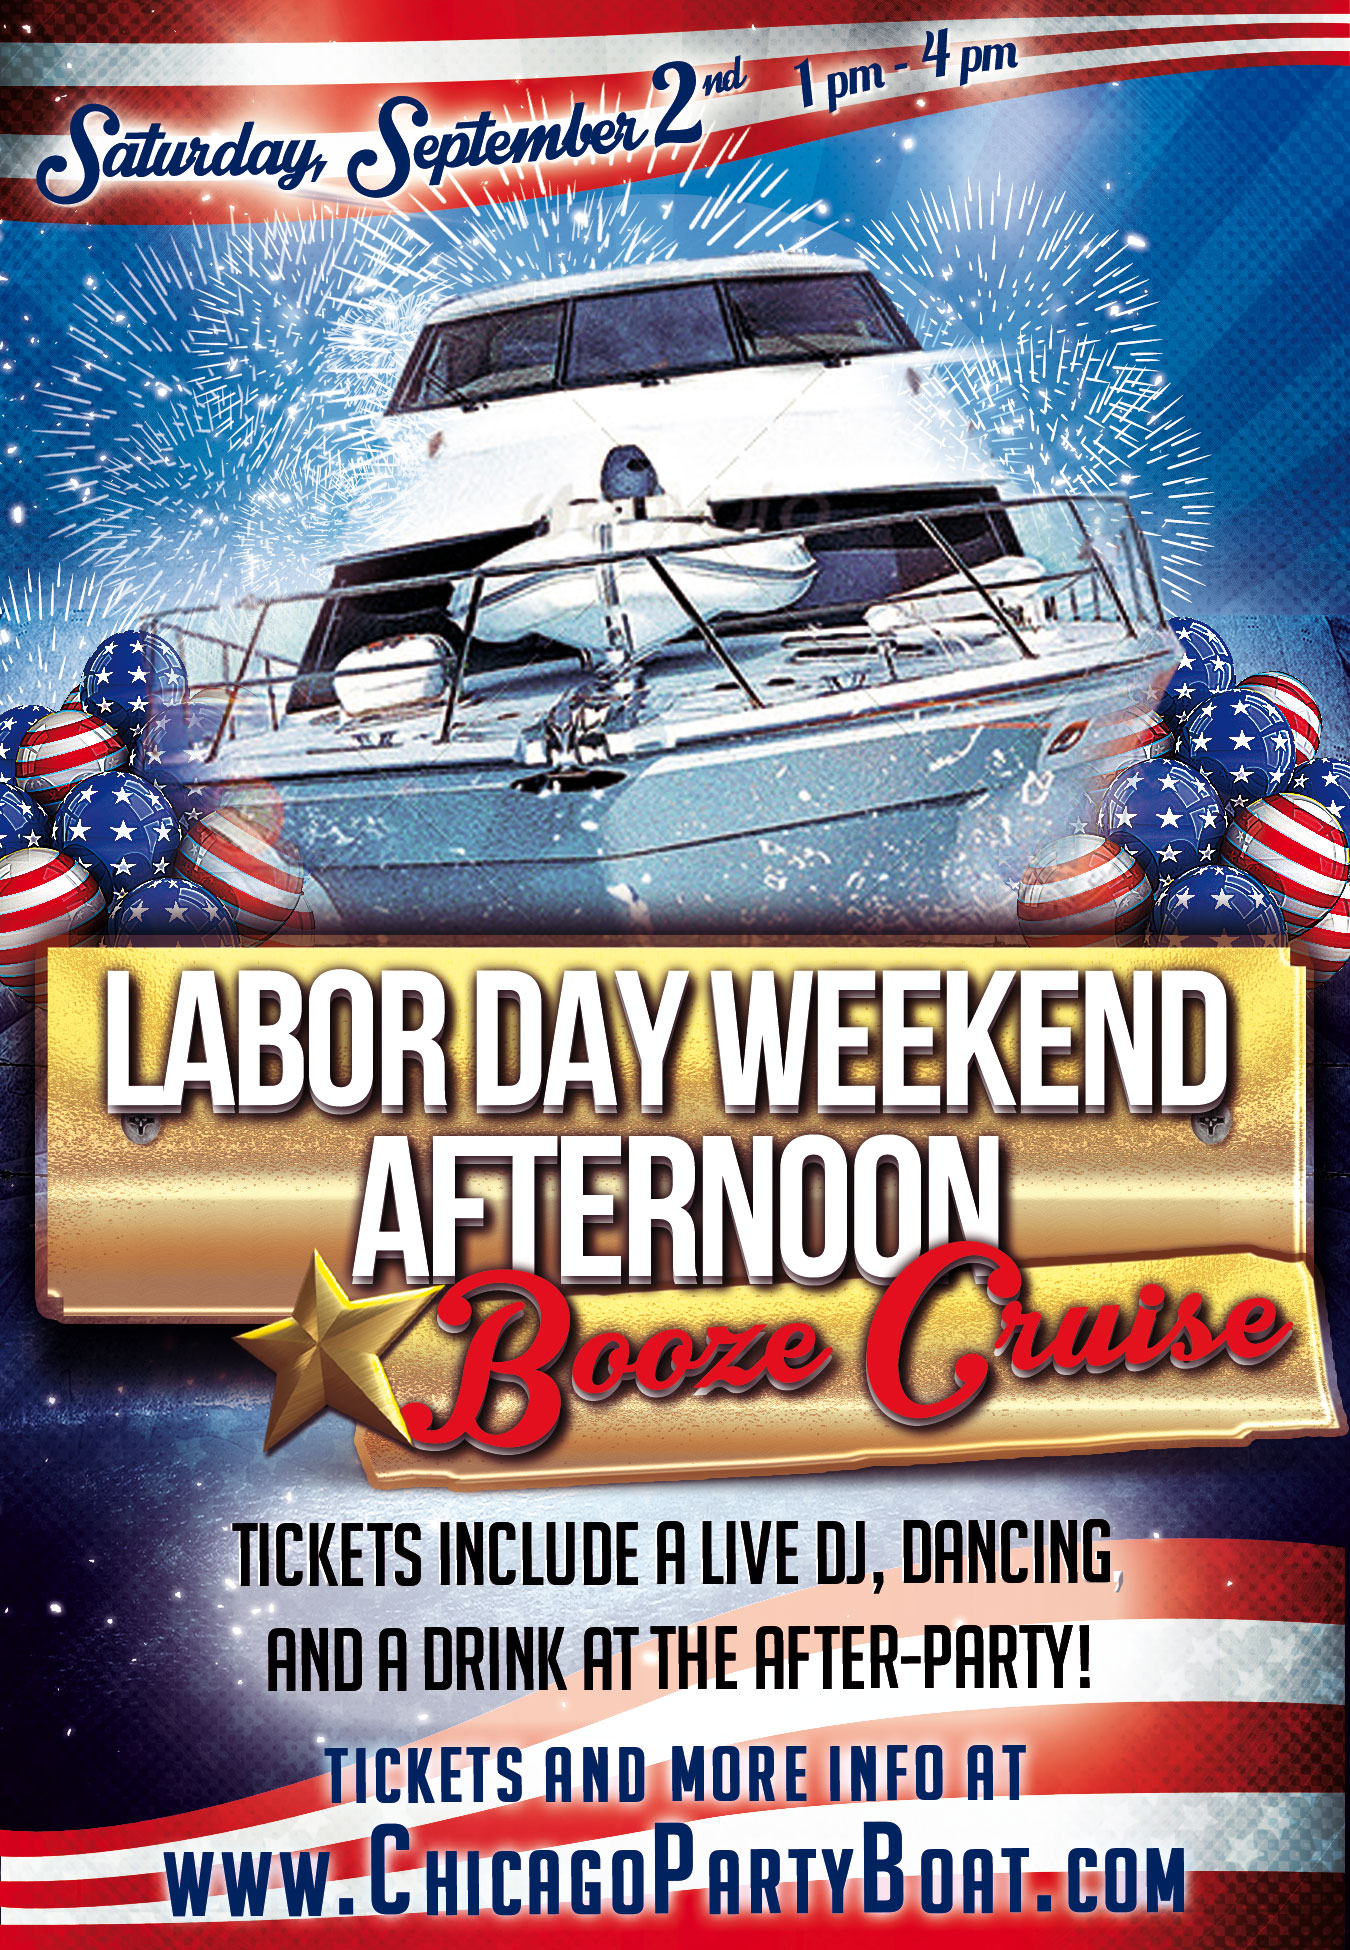 Labor Day Weekend Afternoon Booze Cruise on Lake Michigan! Tickets include a Live DJ, Dancing, and A Drink At The After-Party! Catch breathtaking views of the skyline while aboard the booze cruise!